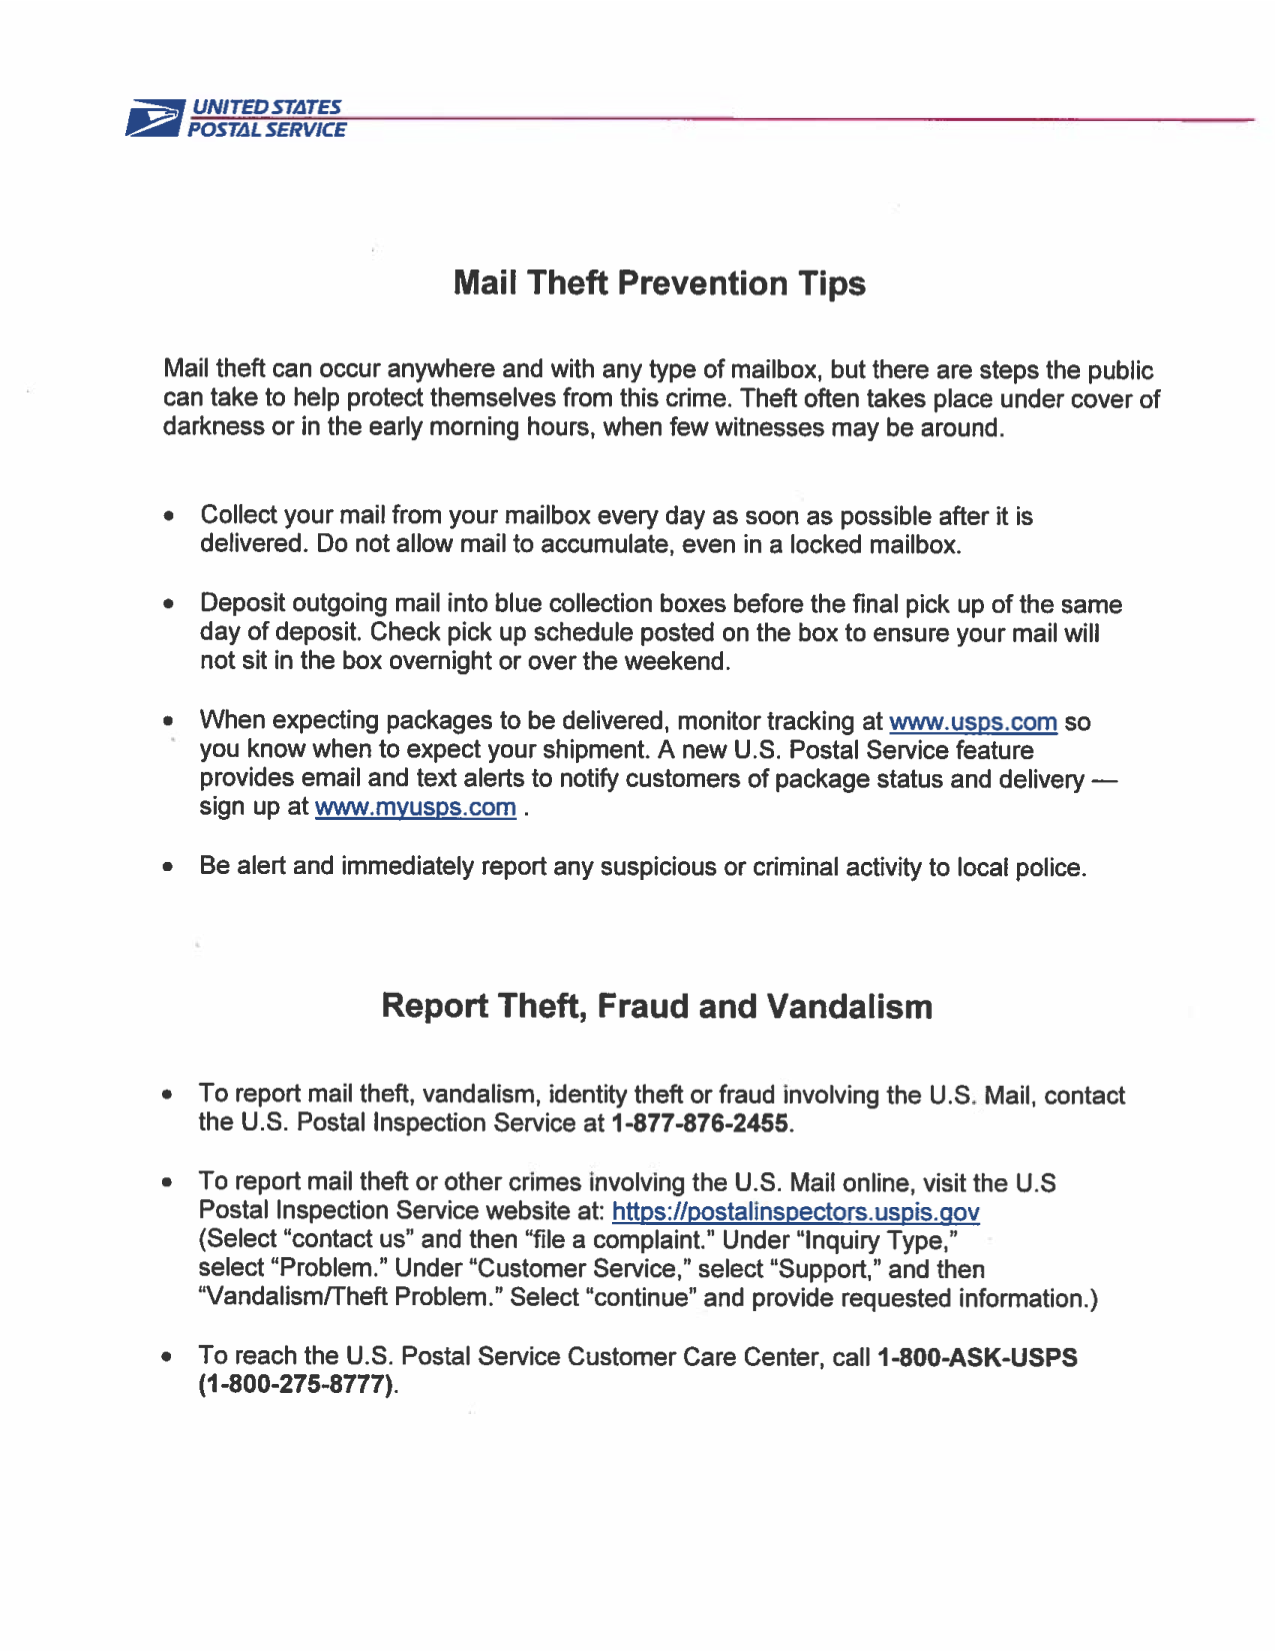 How to Report Mail Theft